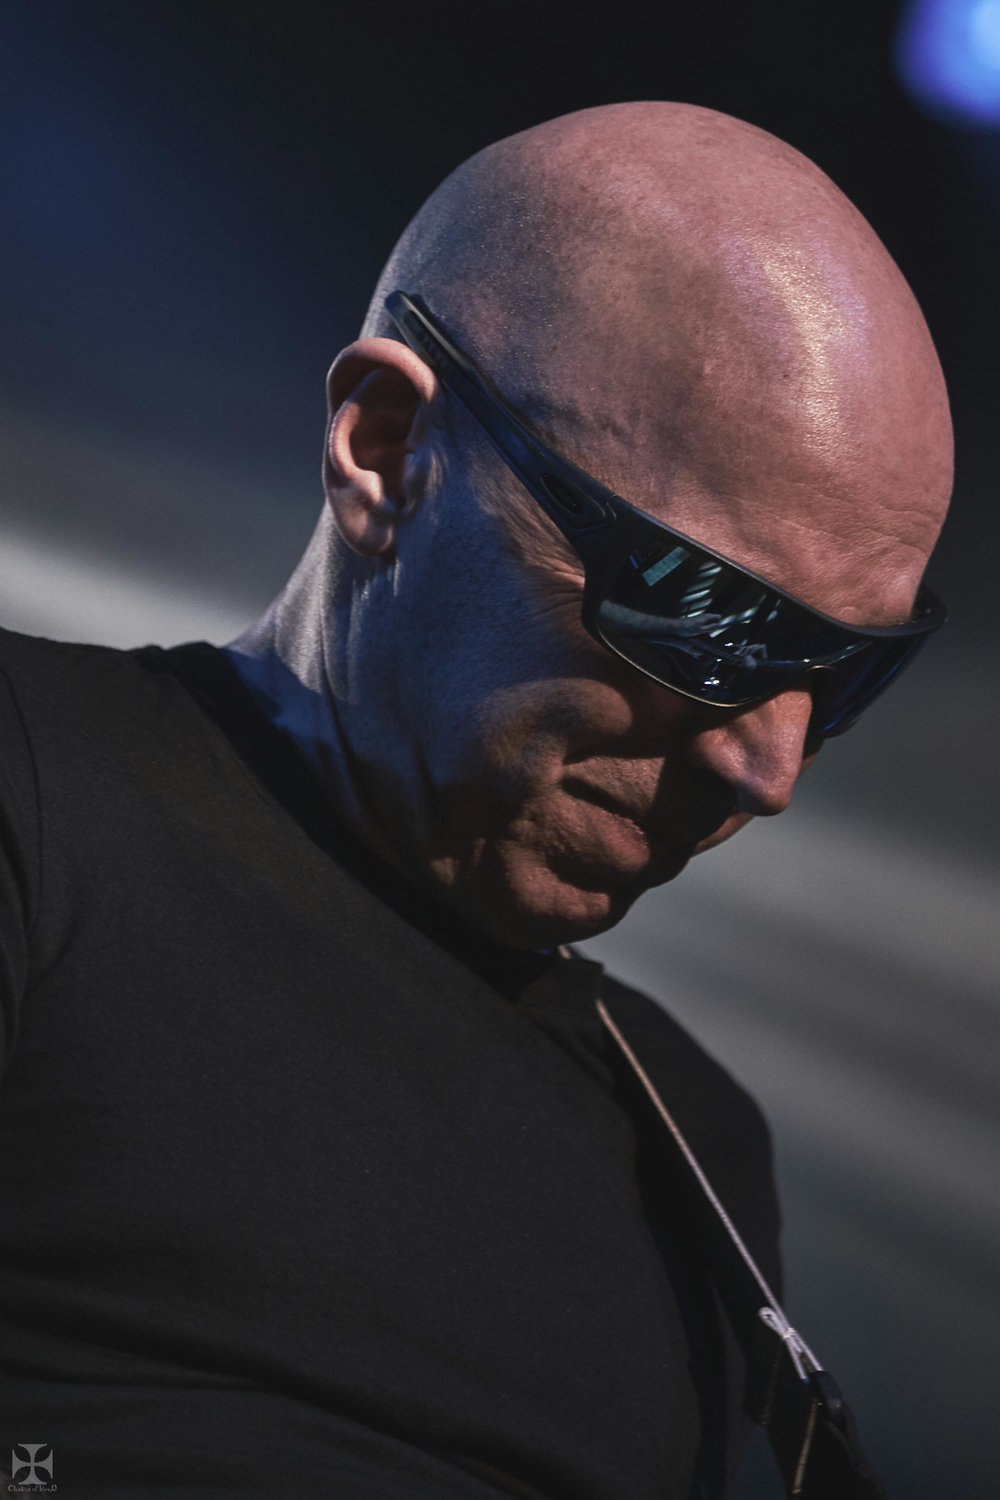 2018.12.04 Joe Satriani - DSCF6876_branded.jpg